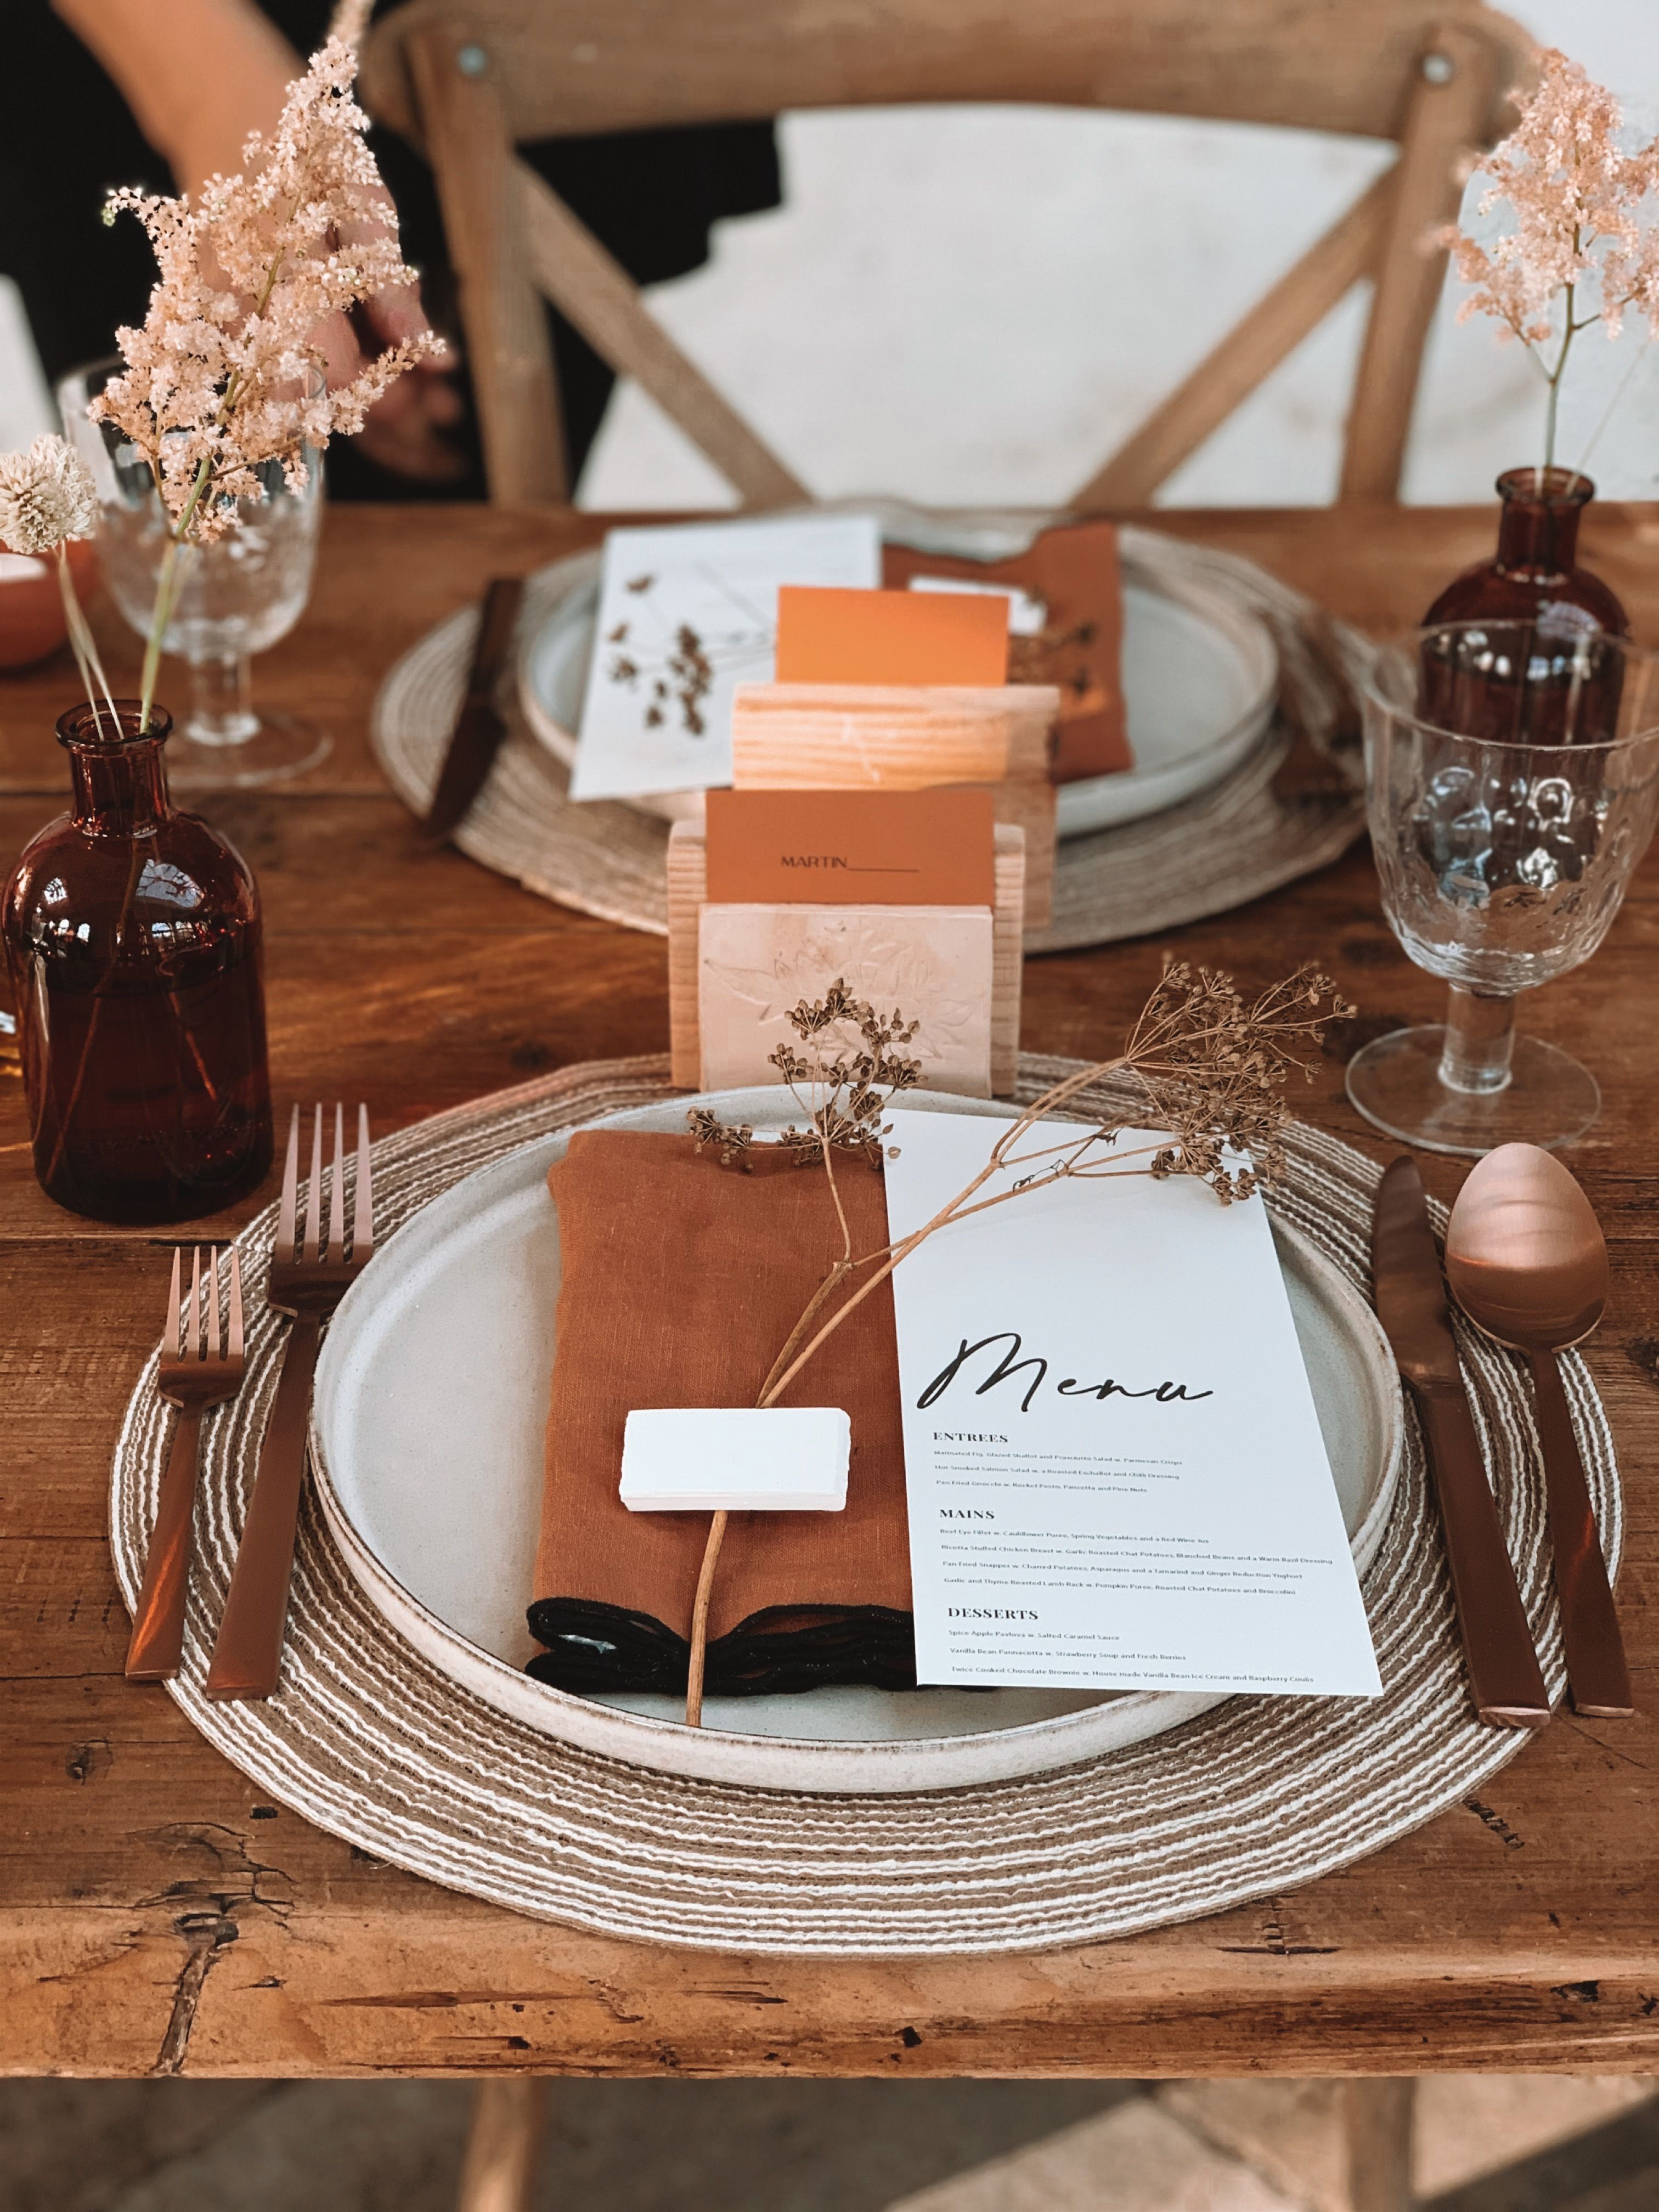 Wedding table place setting for guests from the Clay Rose collection by Smith & The Magpie